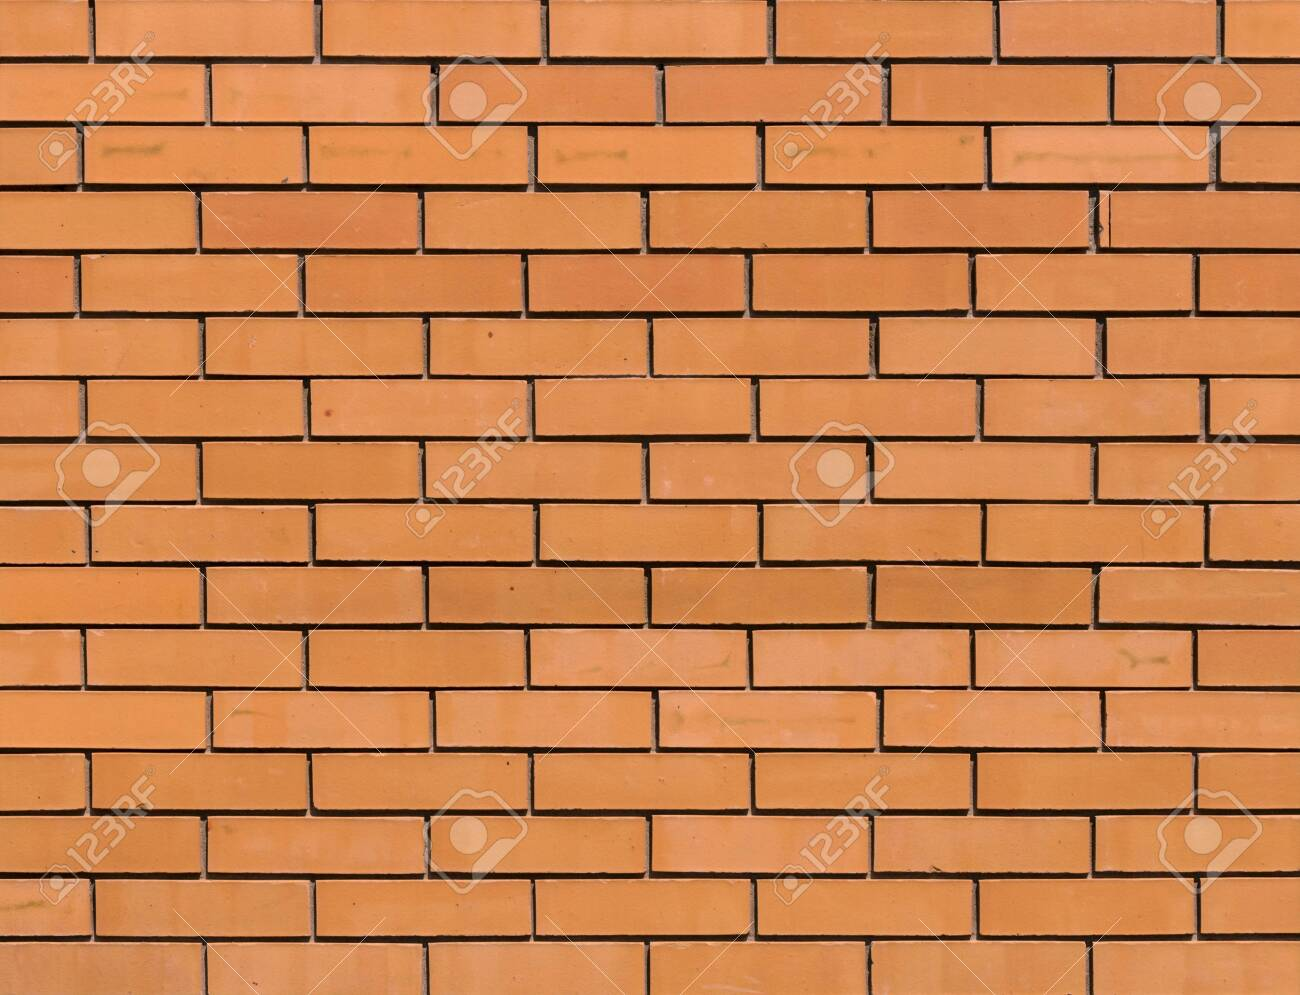 Red orange brick wall for background texture - 135236875